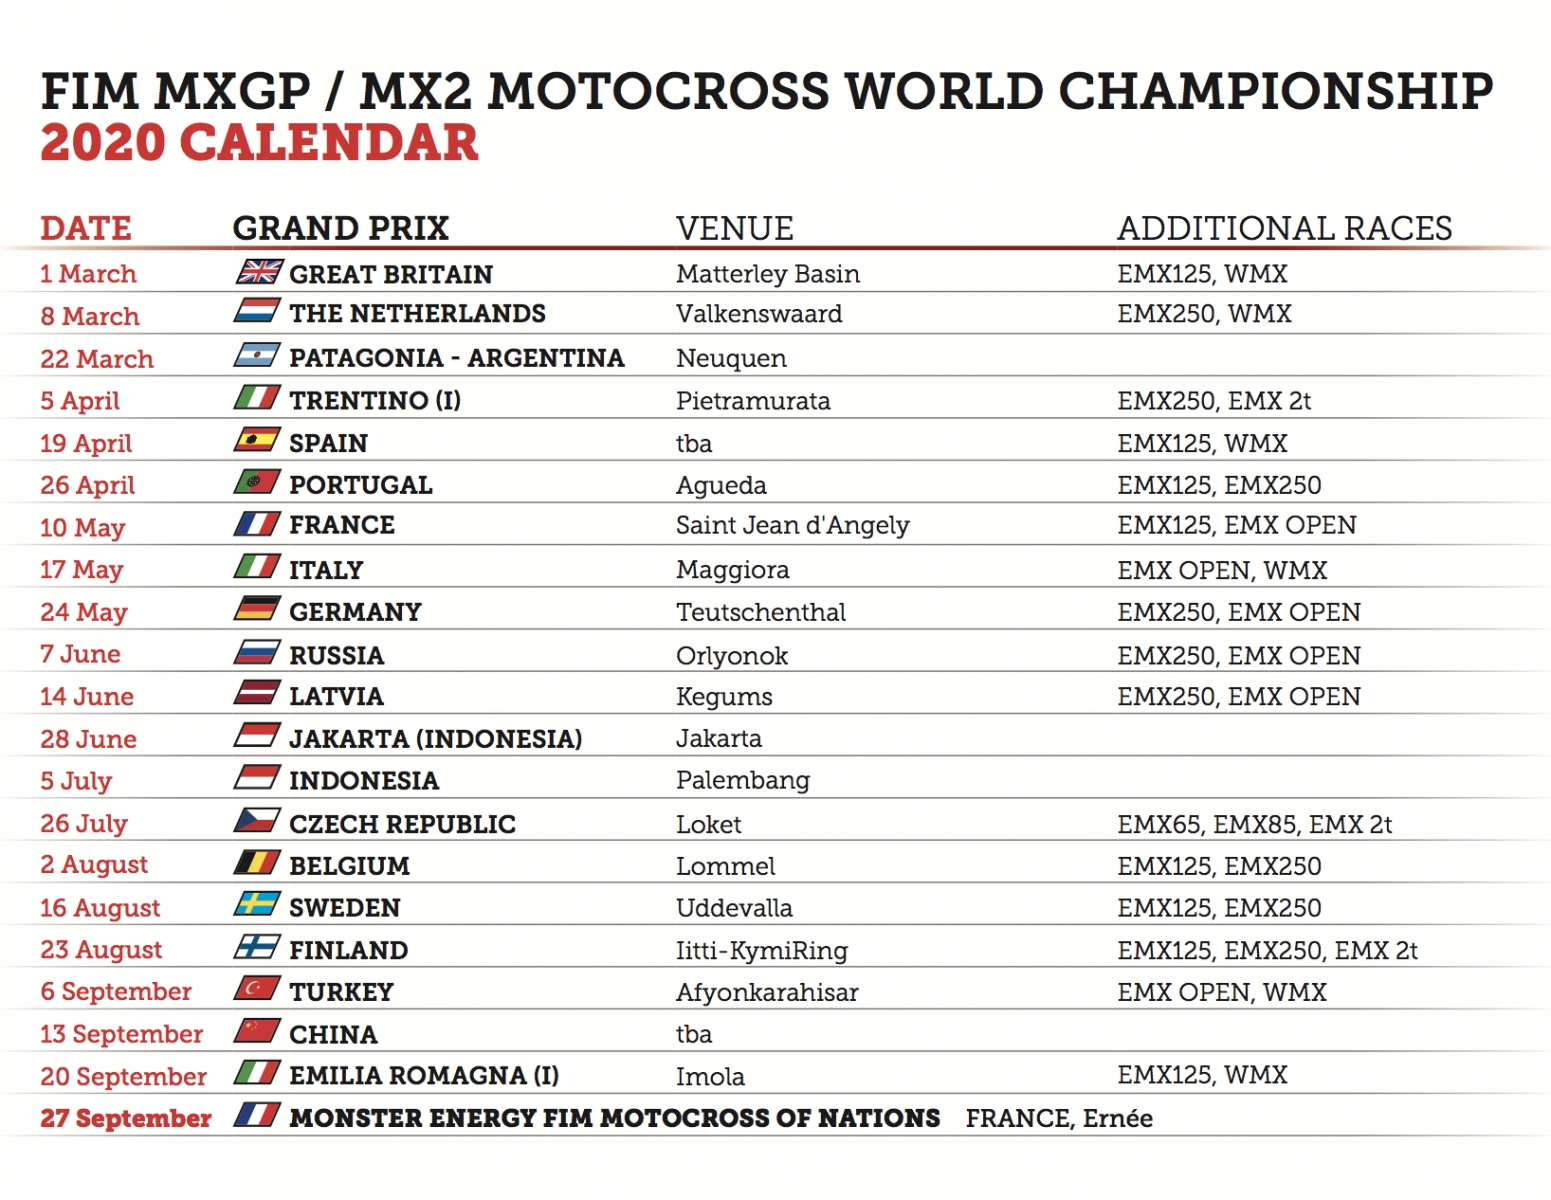 2020 Fim Motocross World Championship Official Calendar | Mxgp